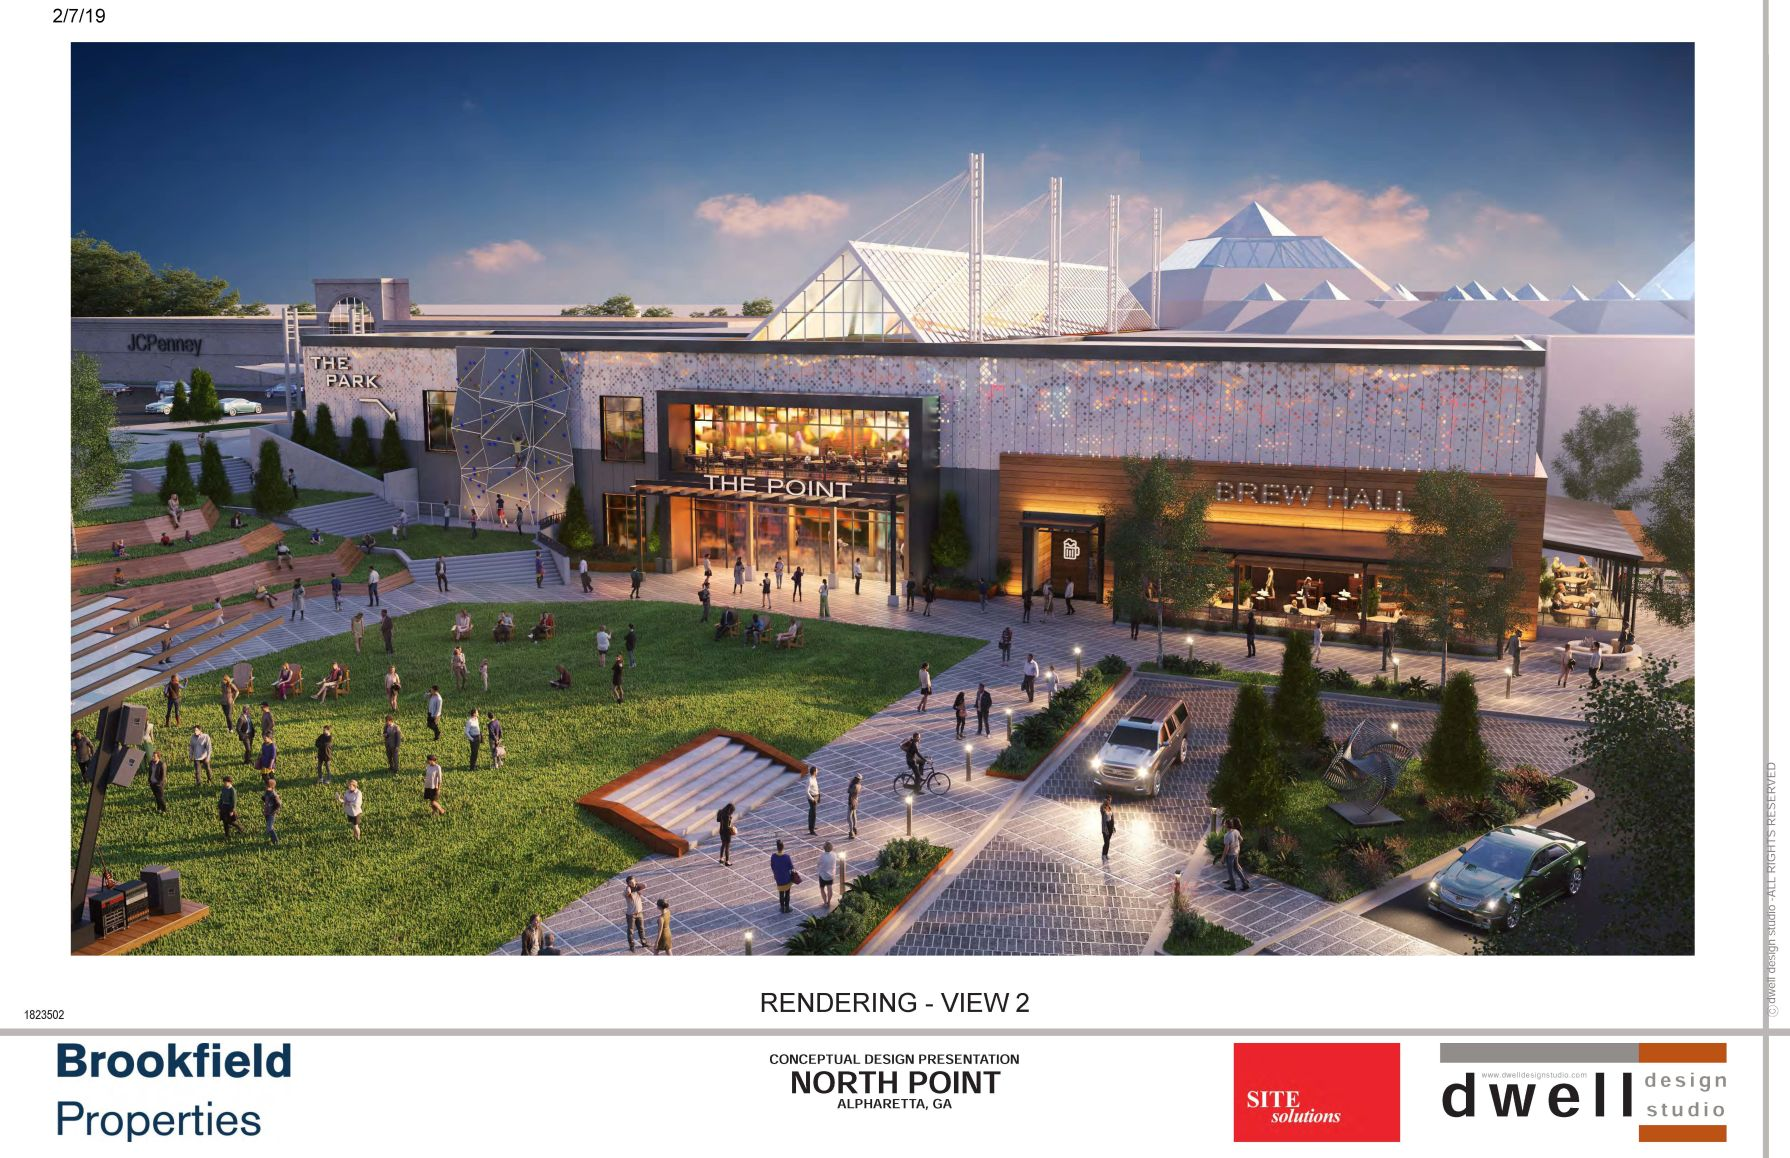 North Point Mall Rendering